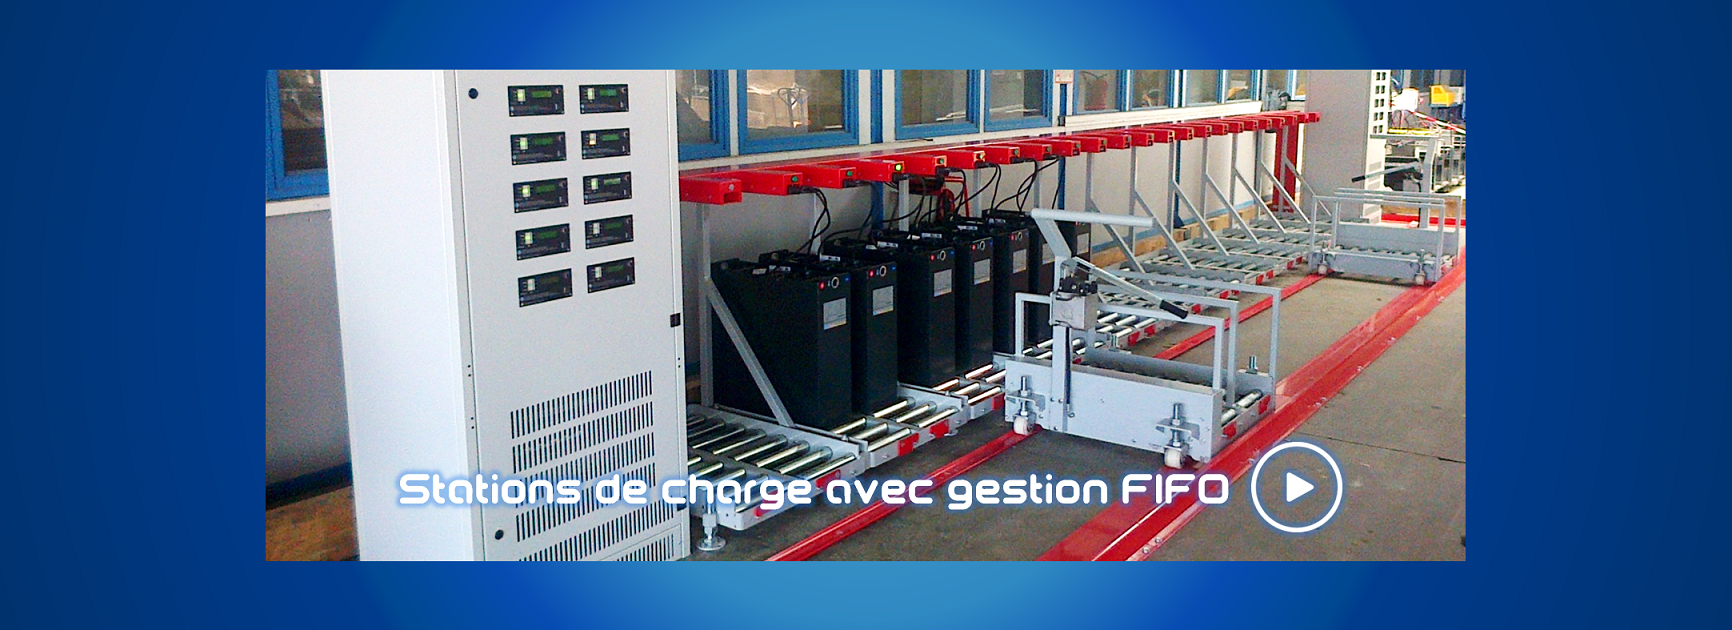 Stations-de-charge-FIFO-1